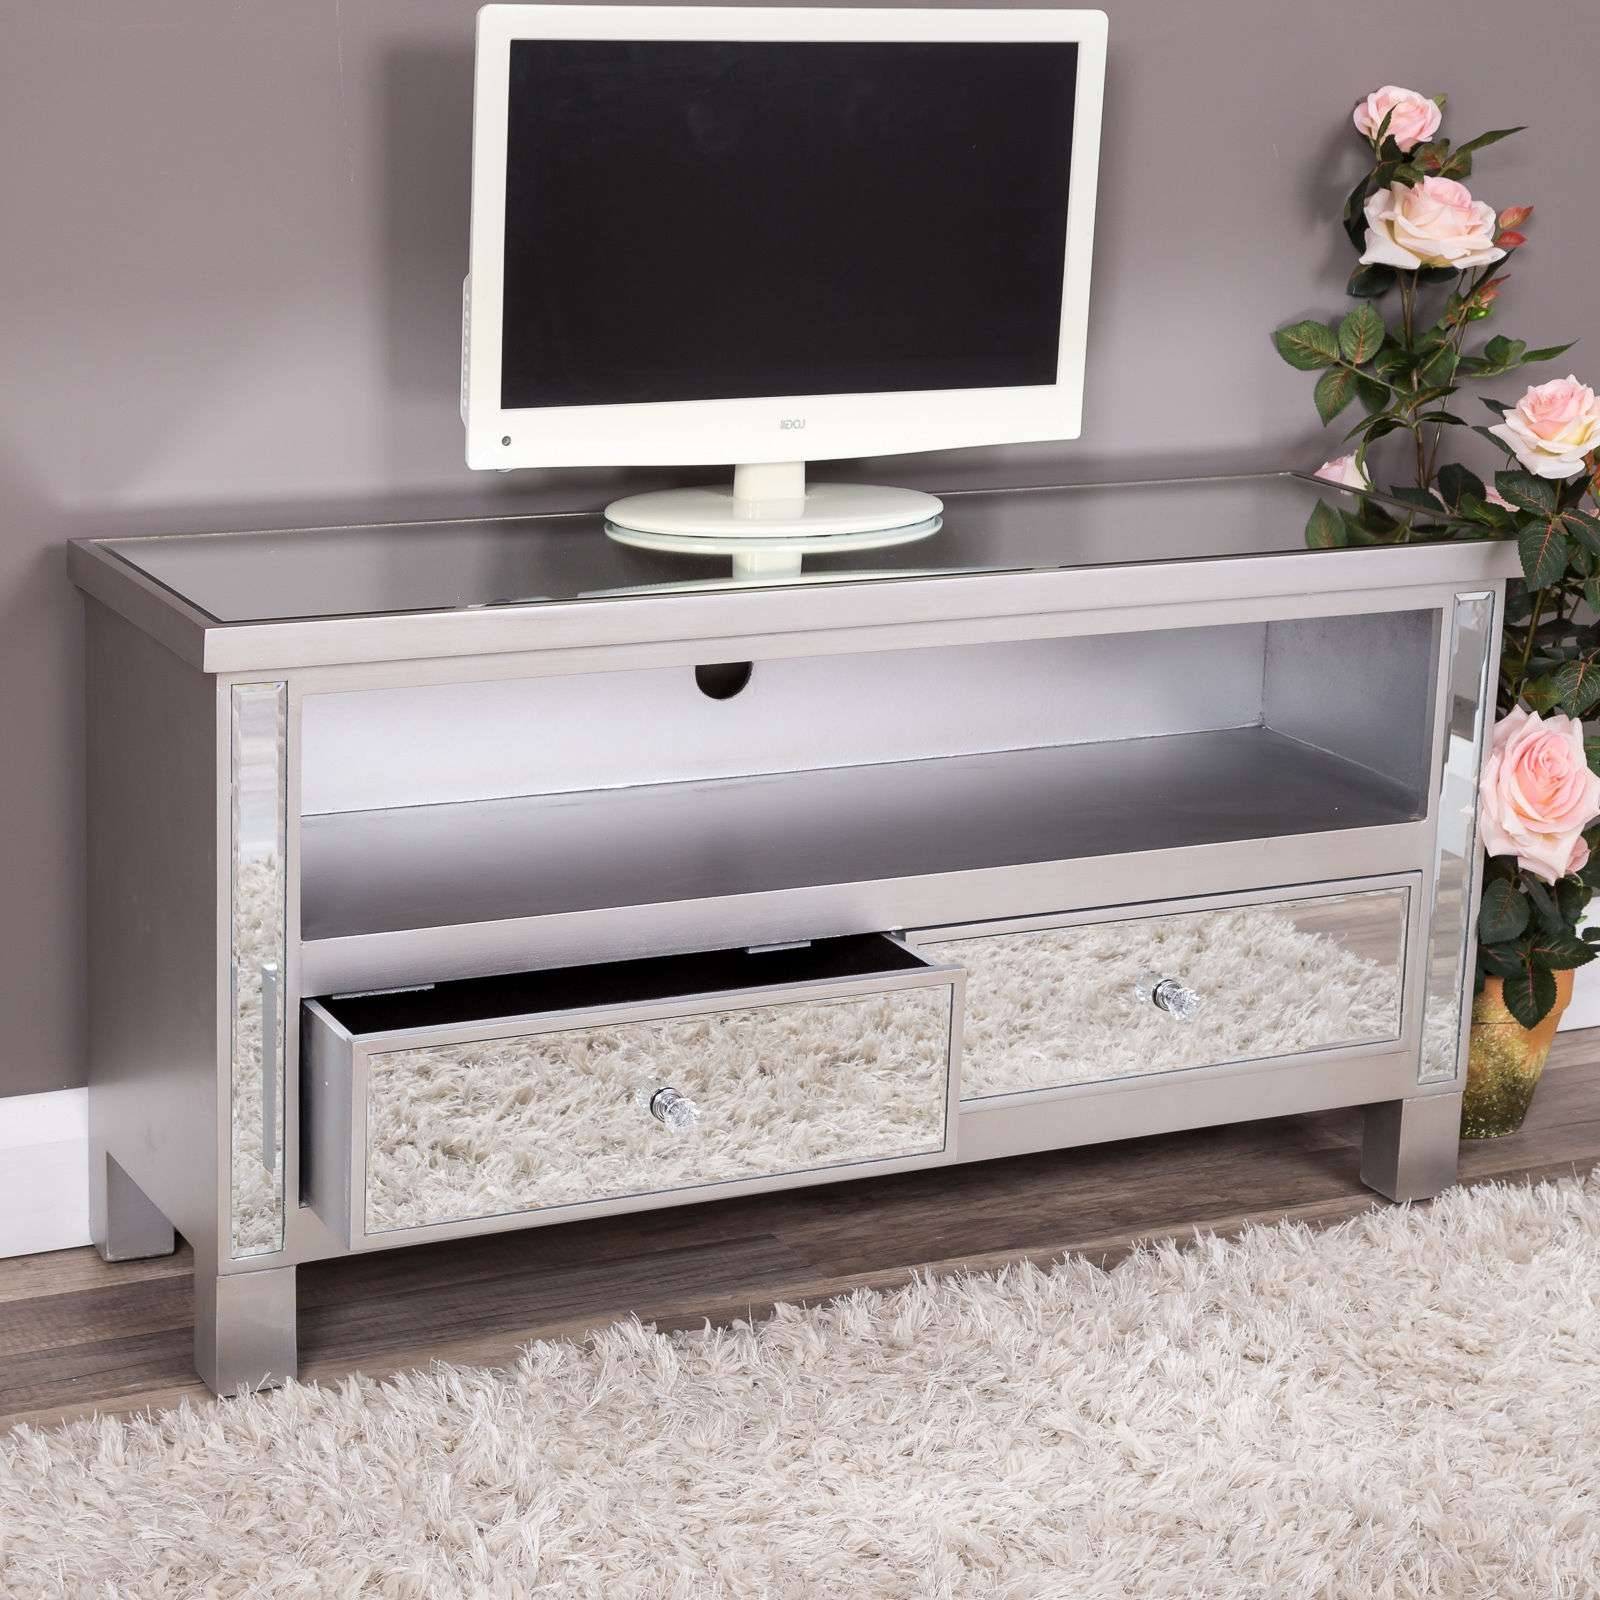 Silver Mirrored Glass 2 Drawer Tv Entertainment Cabinet Stand Unit Intended For Mirror Tv Cabinets (View 6 of 20)